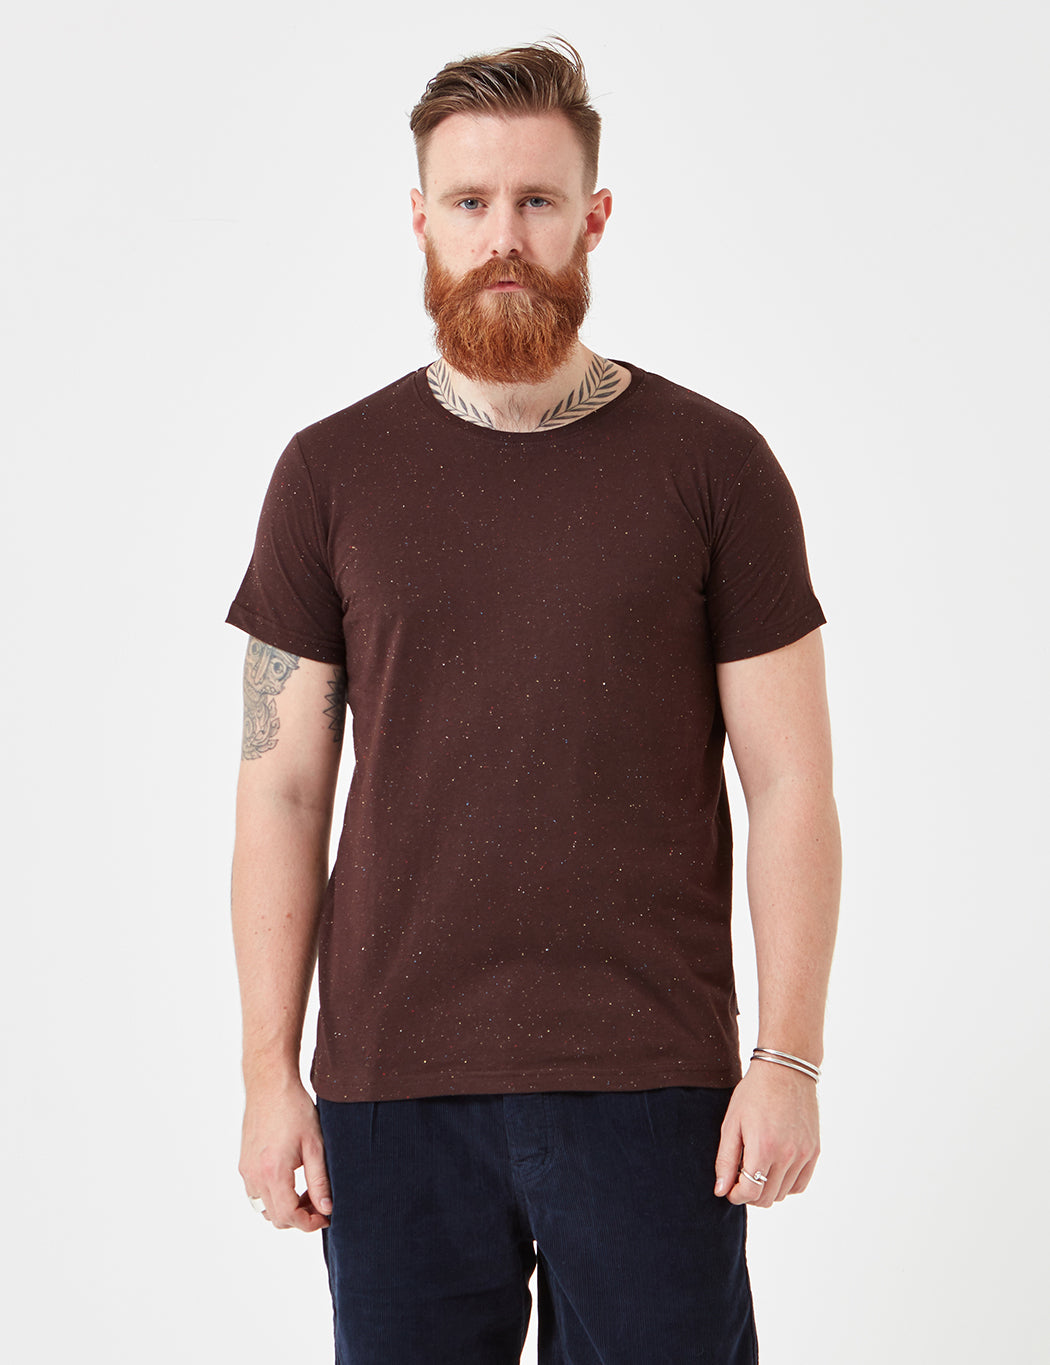 Suit Broadway T-Shirt - Plum